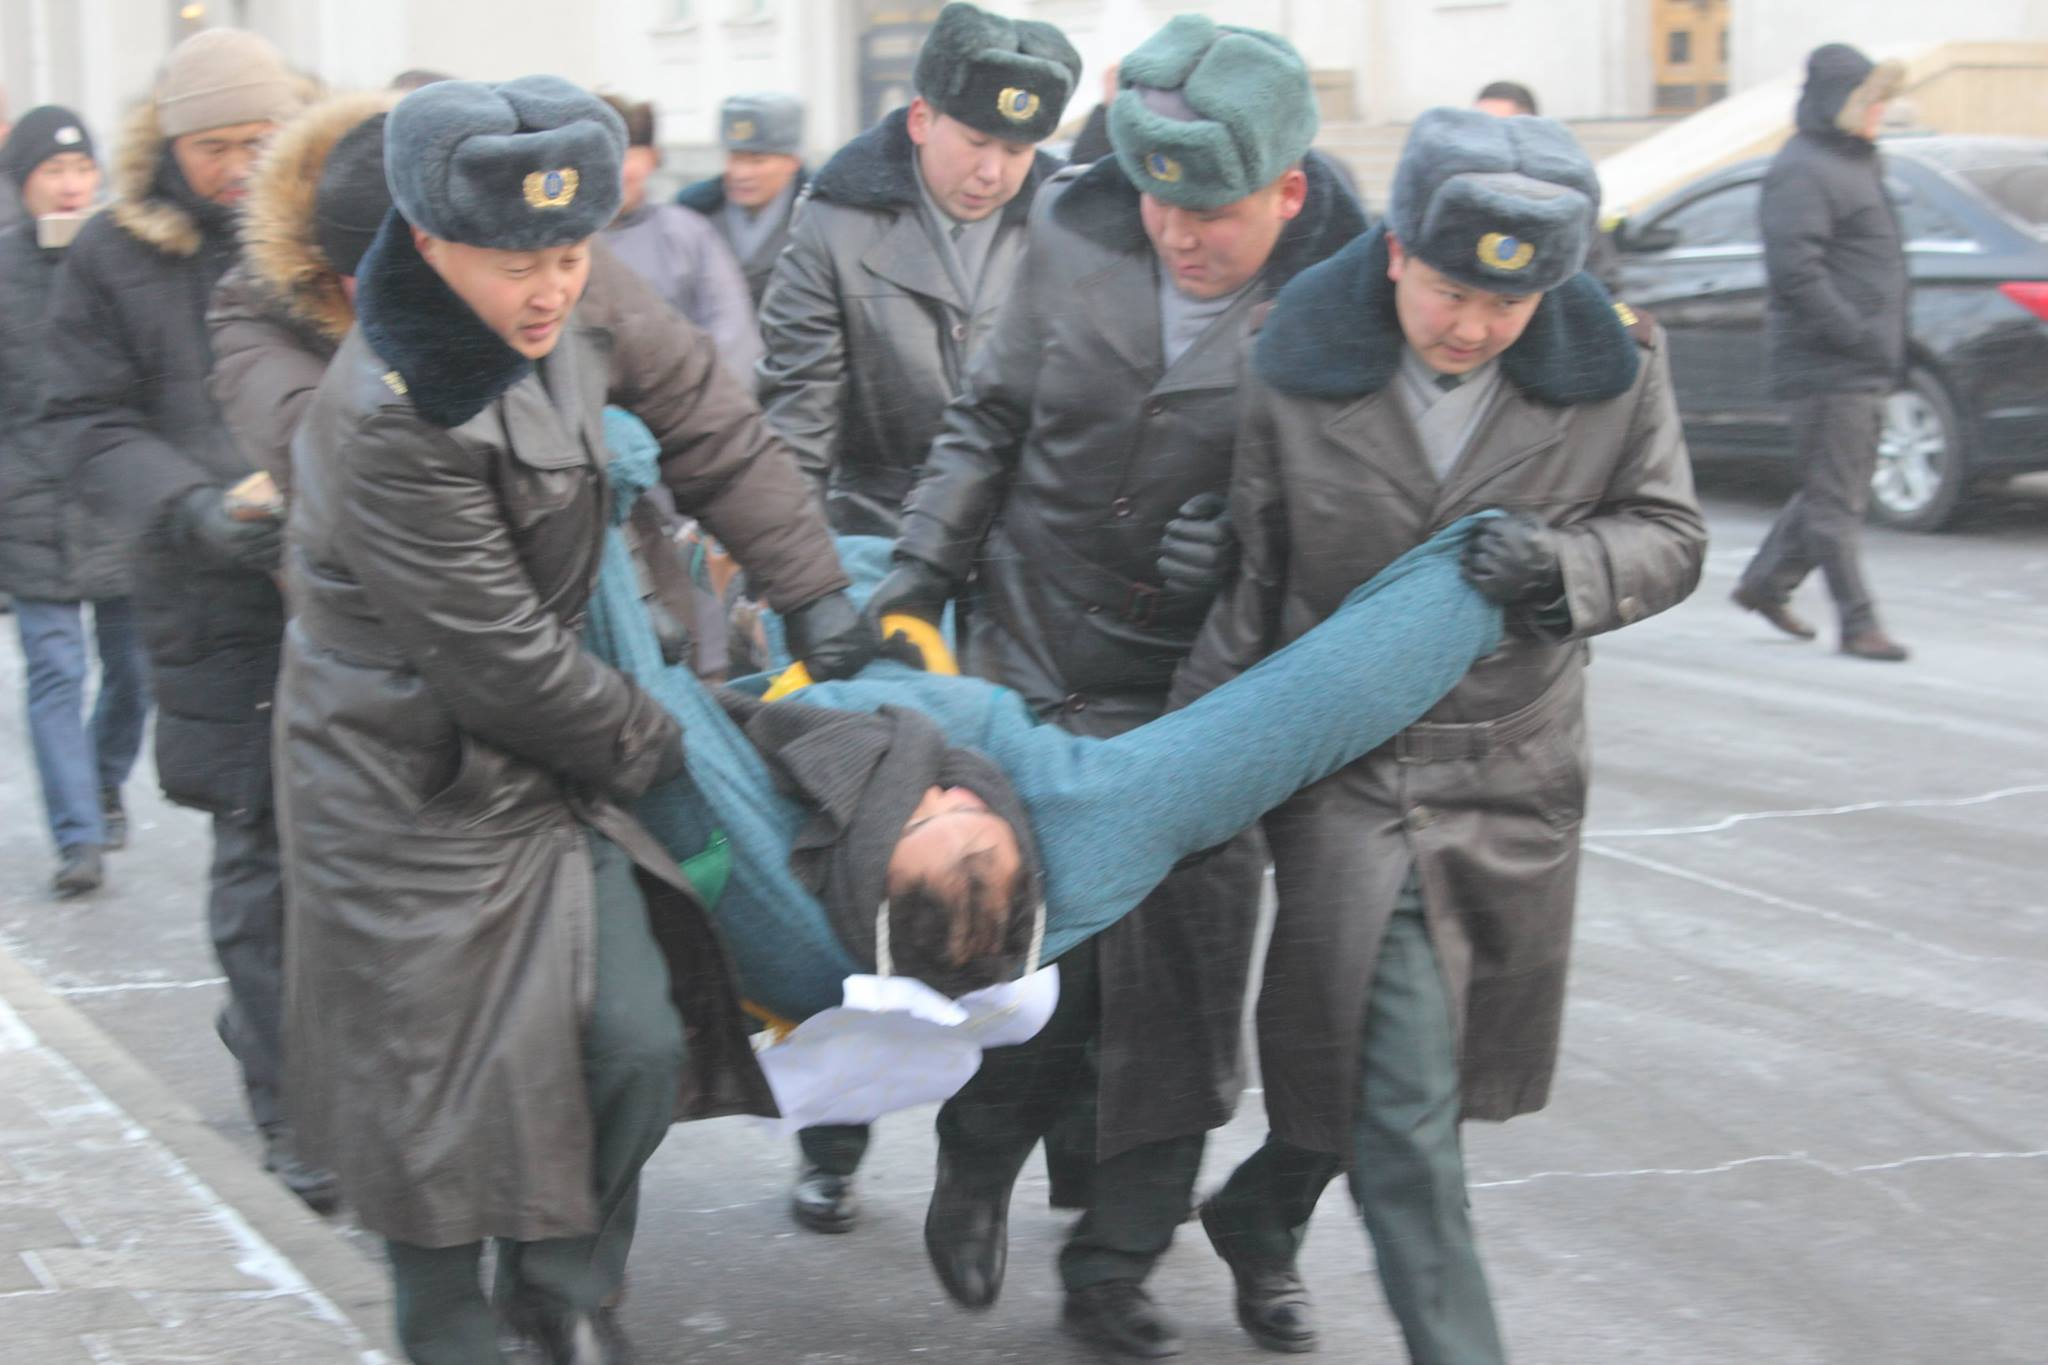 Mongolian police detain protester during a sit-in, March 2016